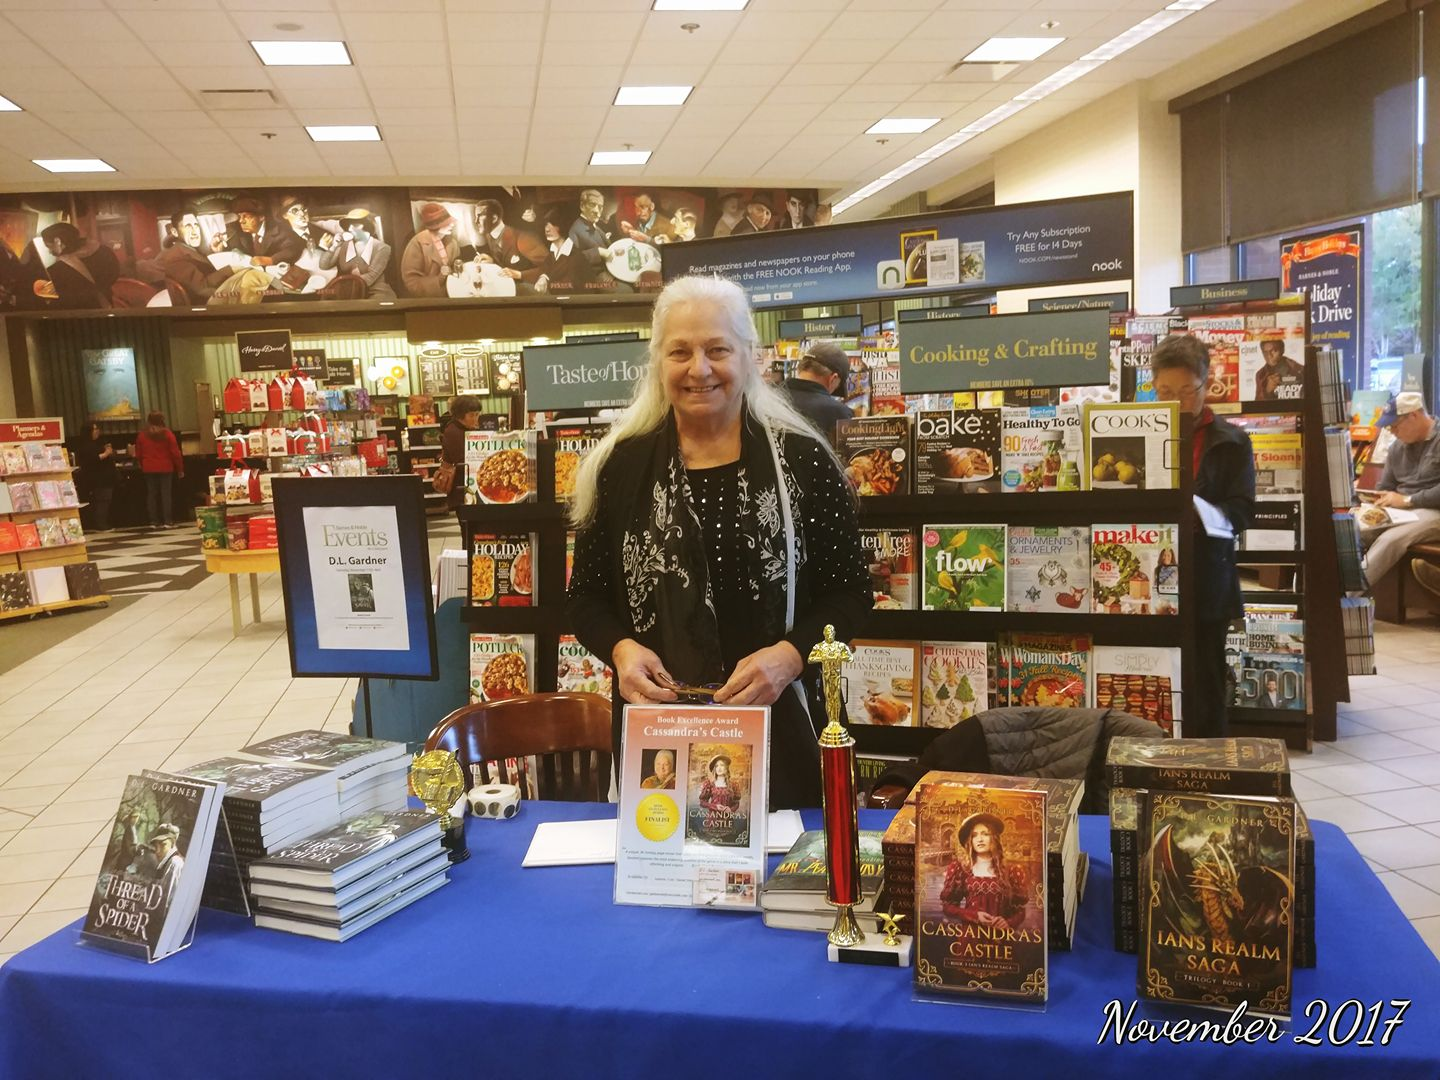 Dianne Gardner At Her Book Signing At Barnes & Noble